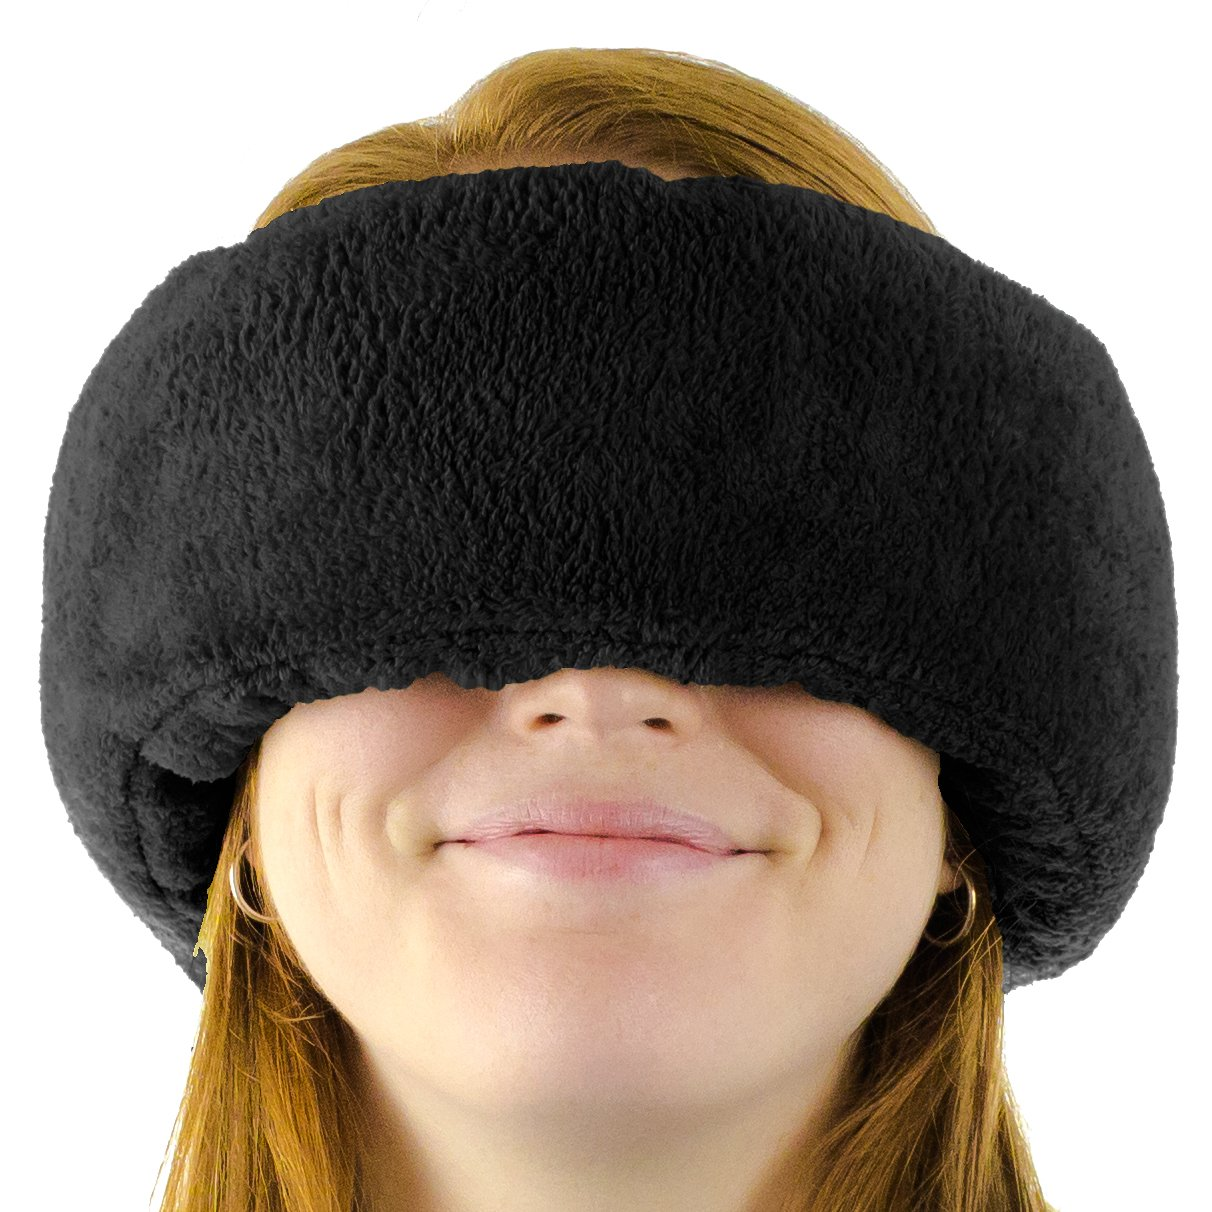 Wrap-a-NapTM Travel Pillow, Sleep Mask & Ear Muff. Adjustable Soft Fleece Neck and Head Pillow. Machine Washable. One-Size-Fits-All. by Wrap-a-NapTM